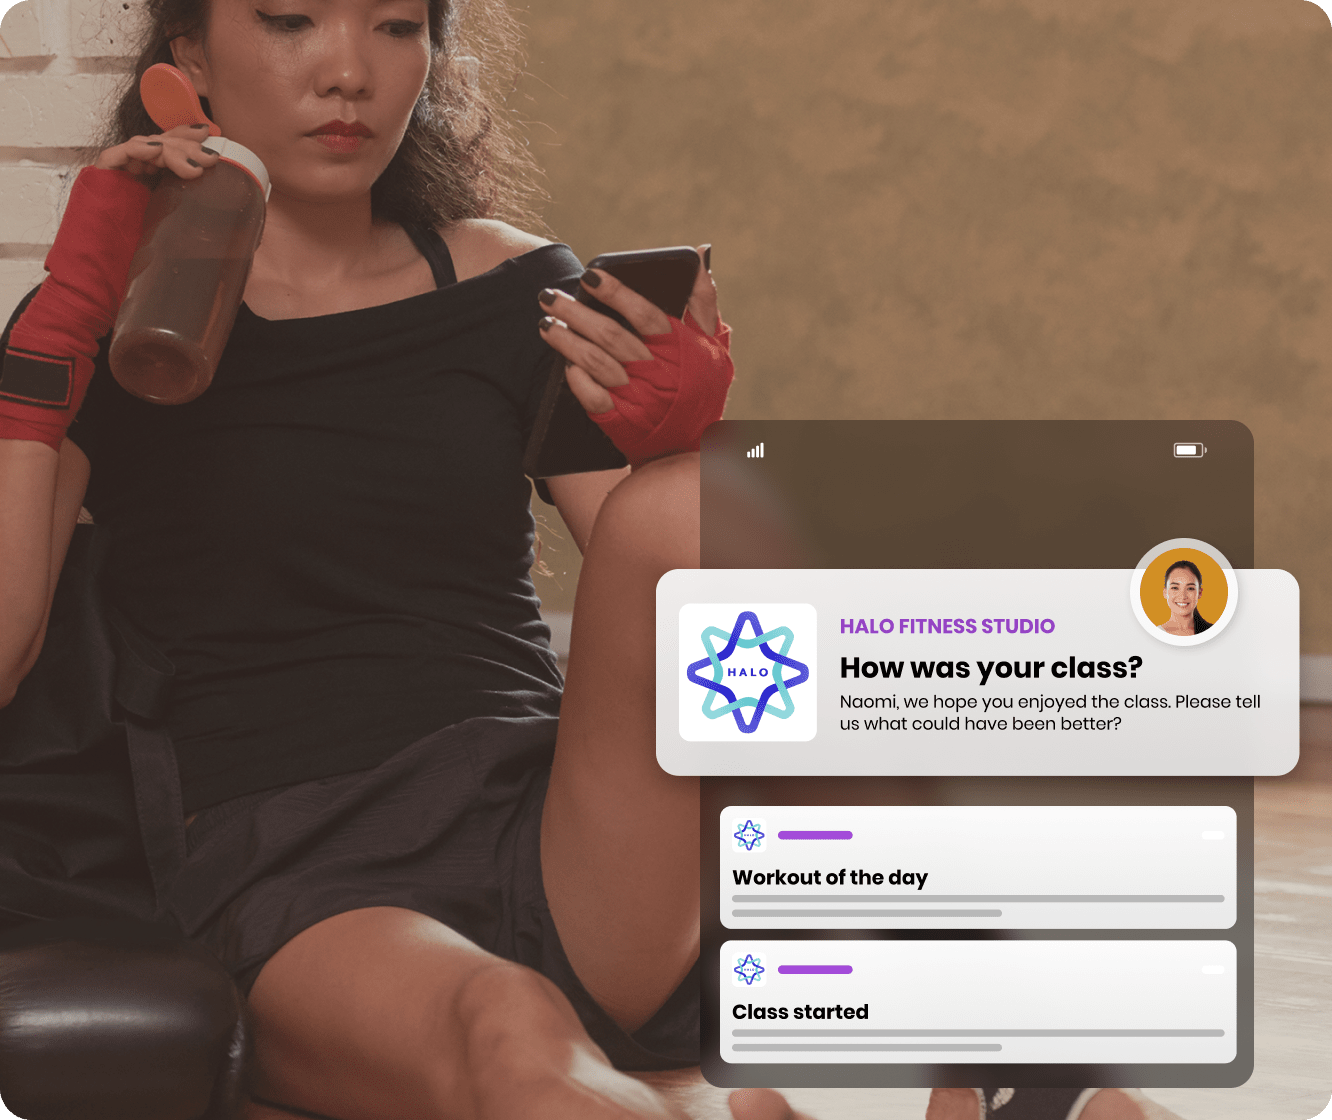 Boxer woman receiving notifications on her phone